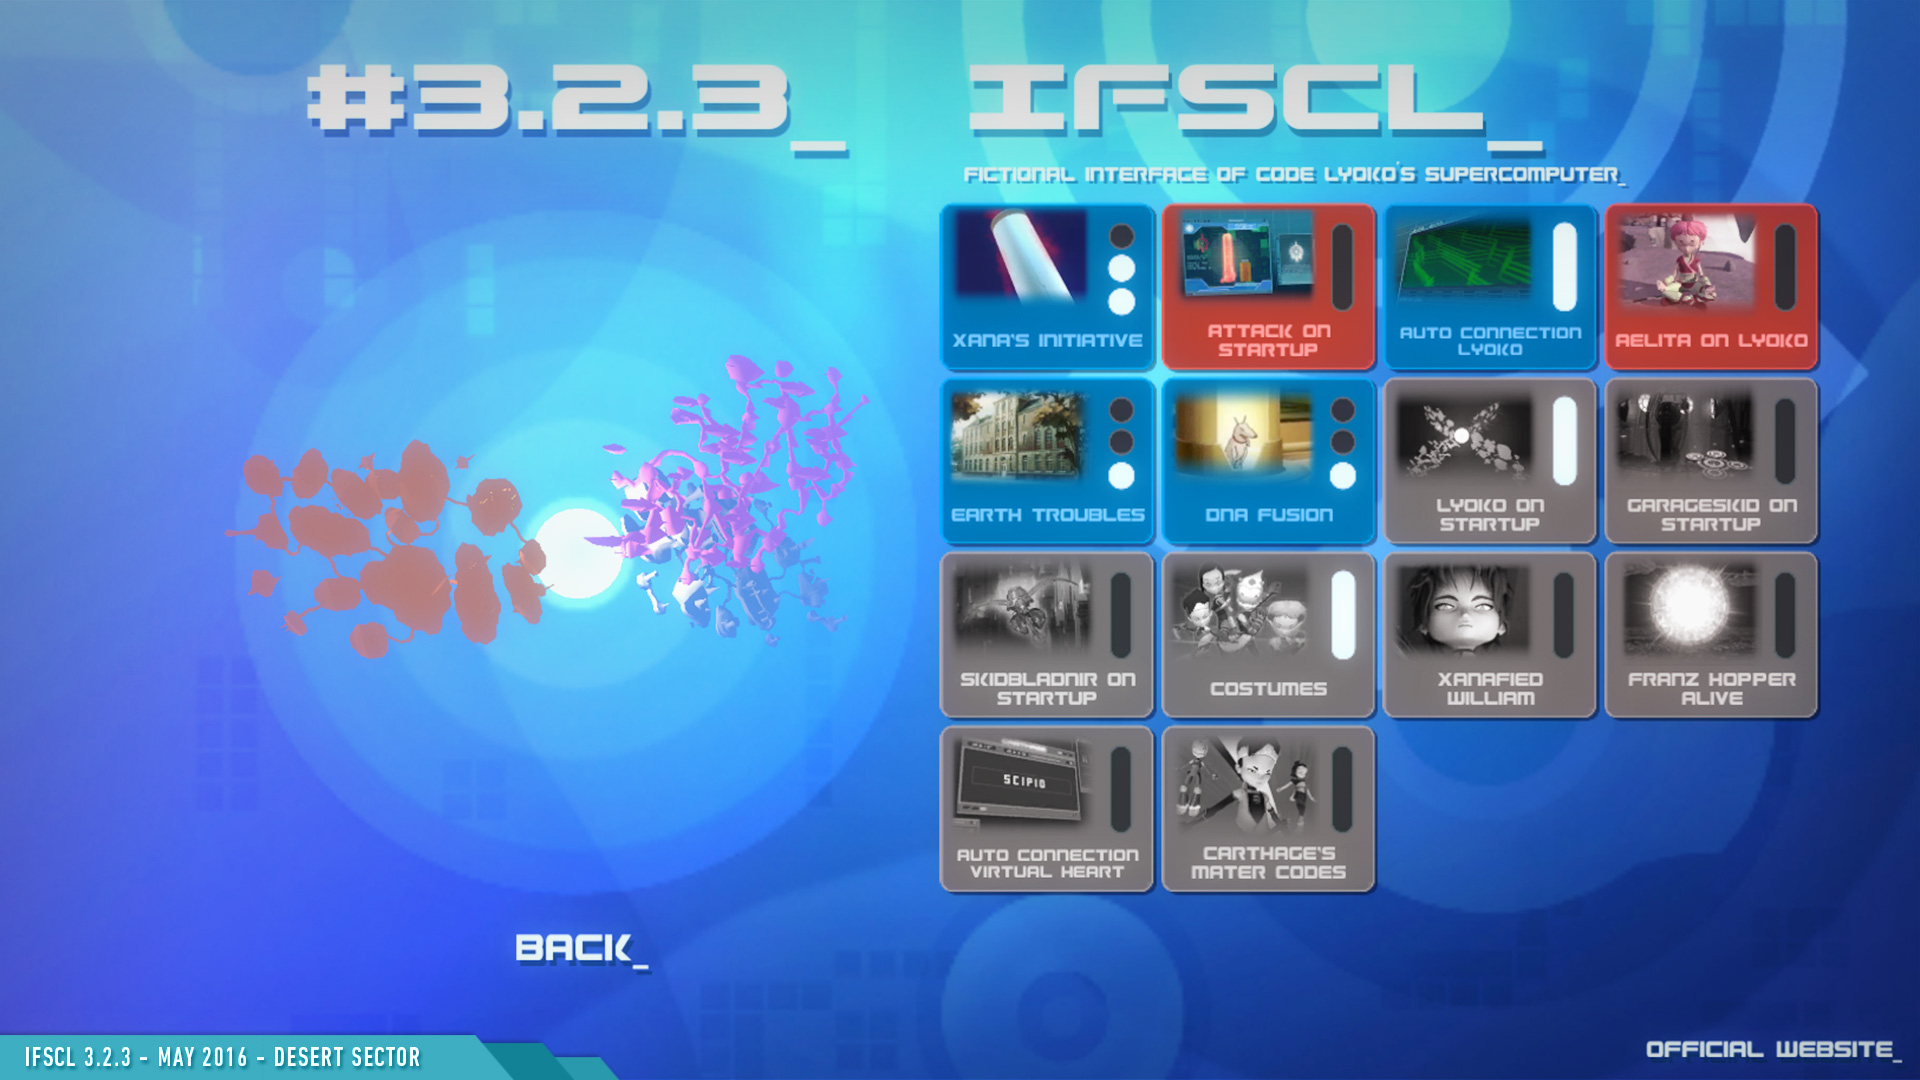 IFSCL 3.2.3 - screens